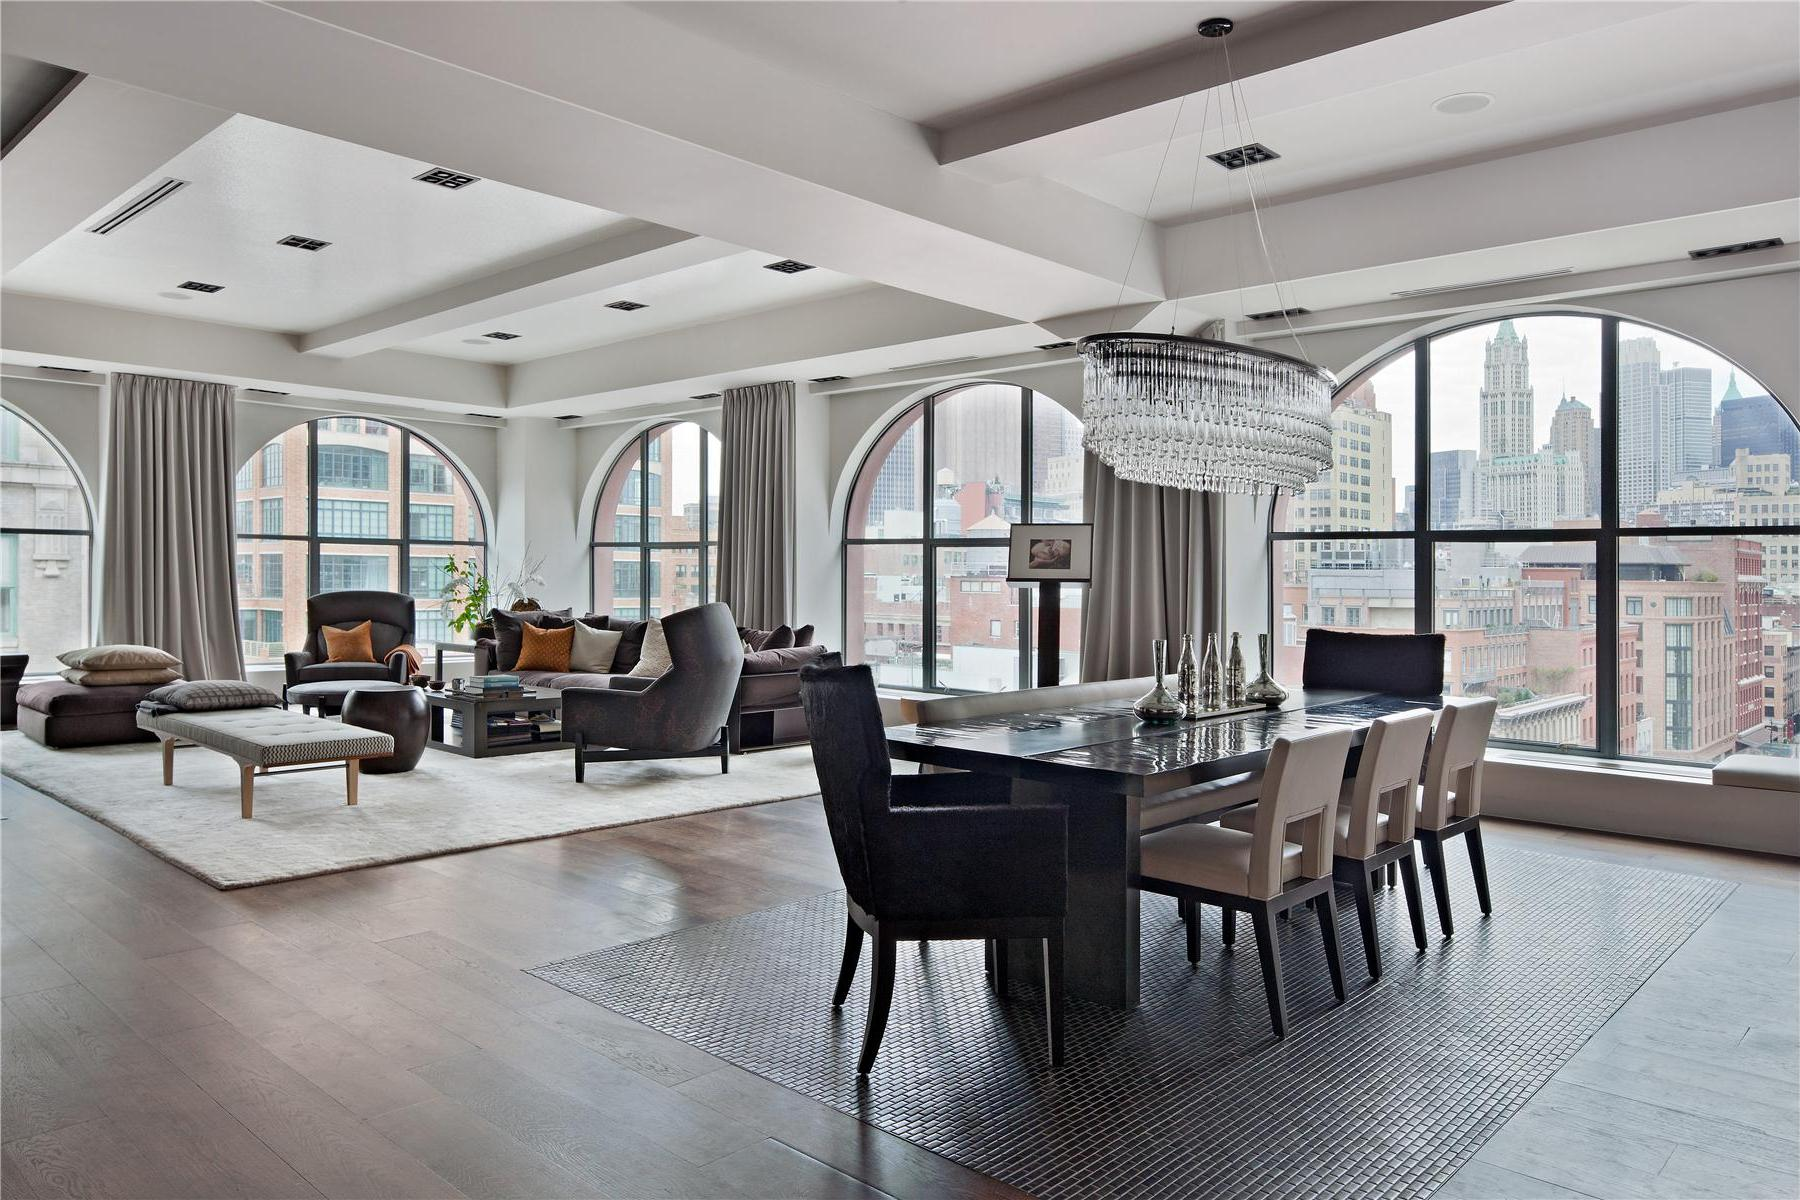 Spectacular 408 greenwich street loft in tribeca new york for Apartments in tribeca nyc